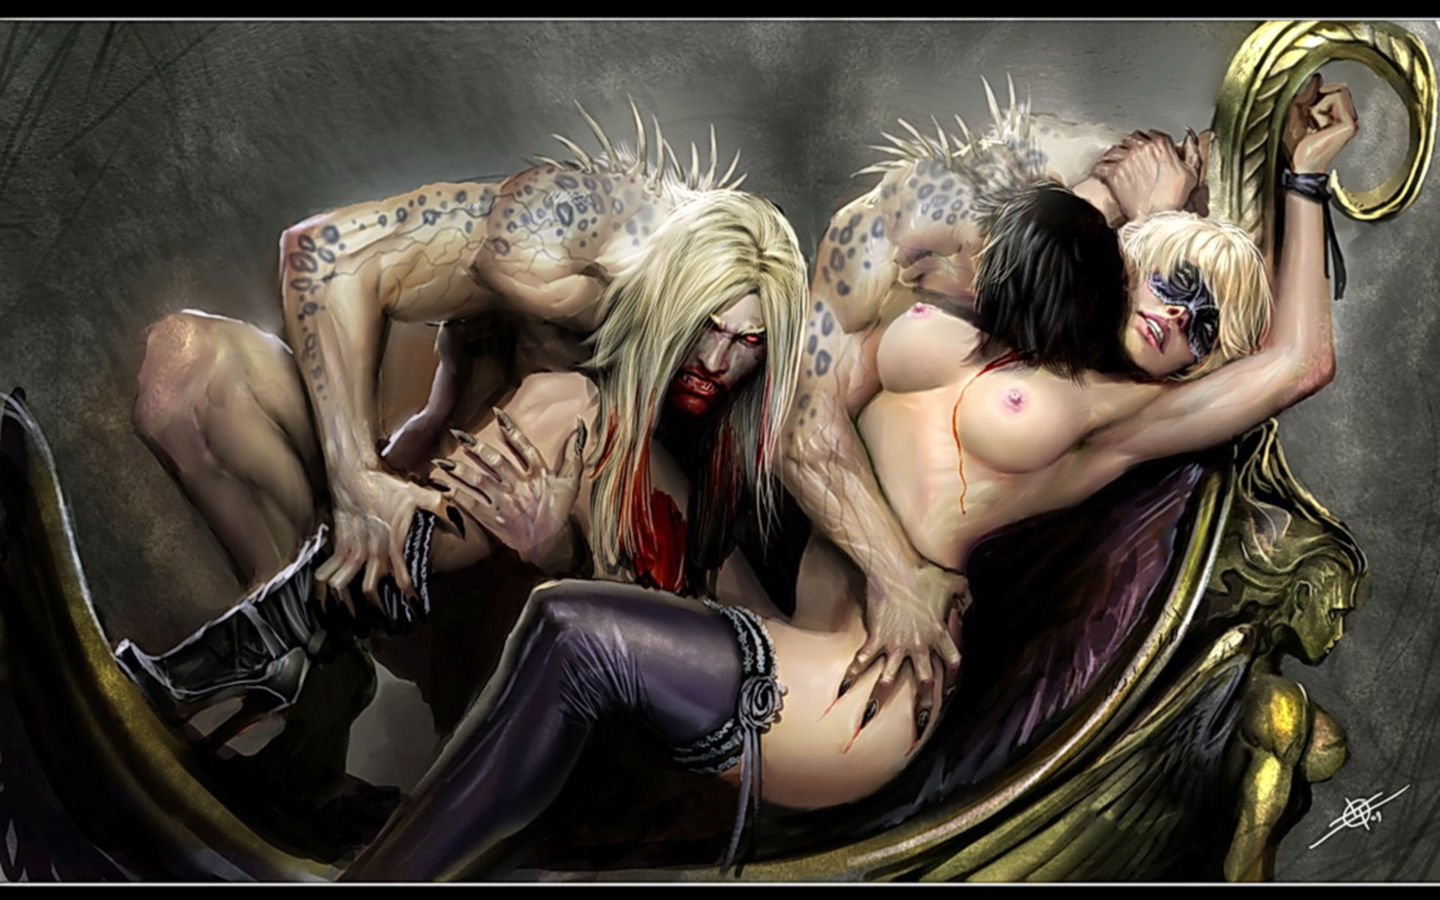 Vampires art xxx erotic tube